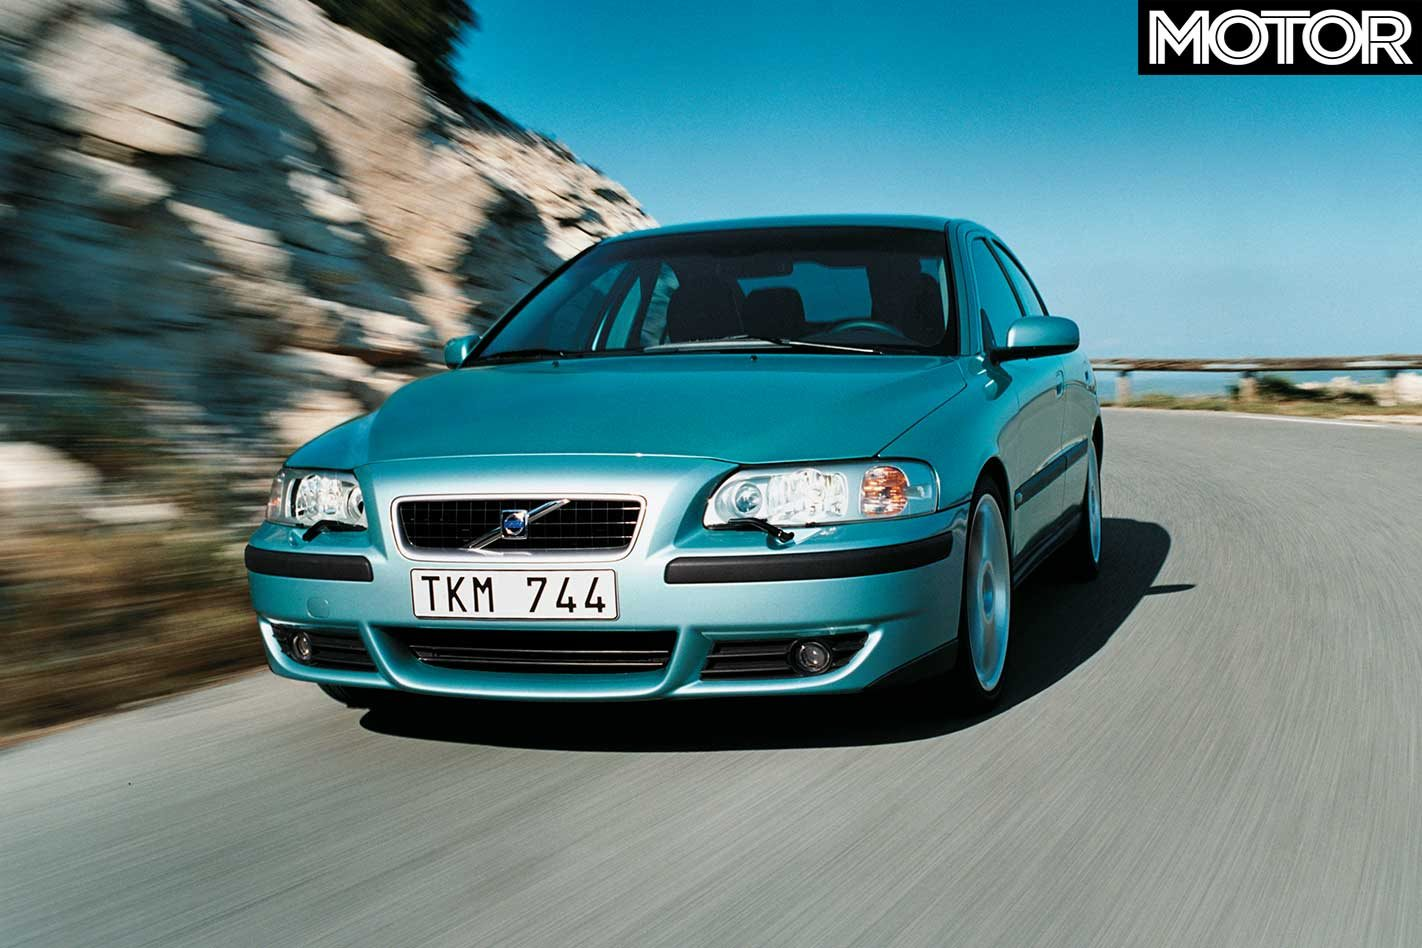 2003 Volvo S60 R review: classic MOTOR